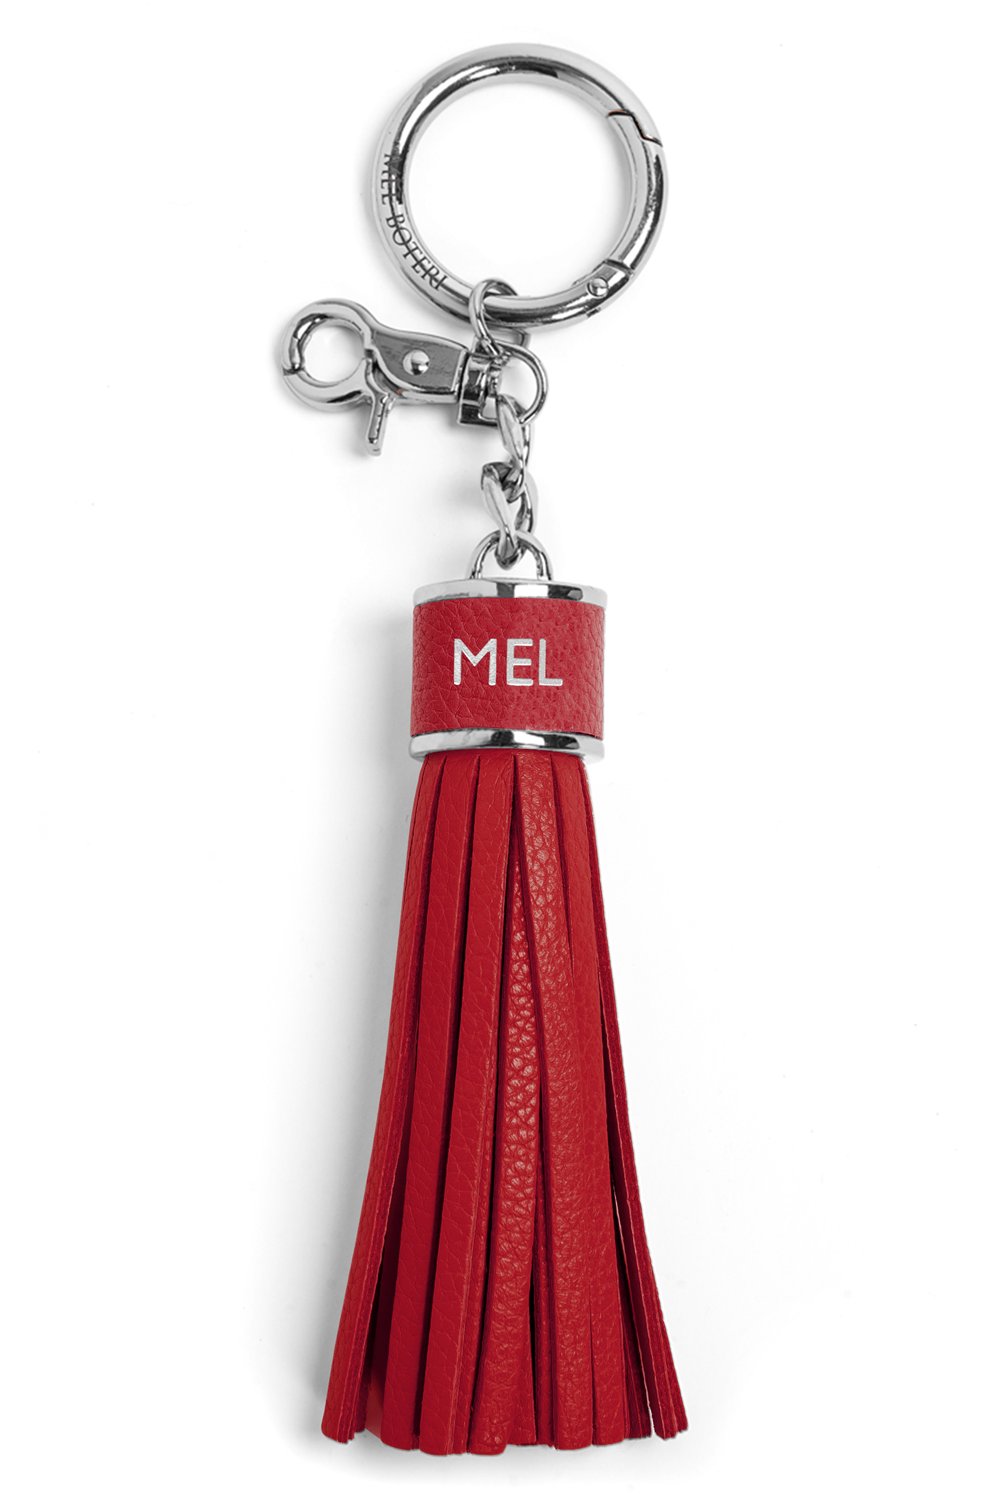 The Mel Boteri Pebbled-Leather Tassel Charm | Ruby Leather With Silver Hardware | Mel Boteri Gift Ideas